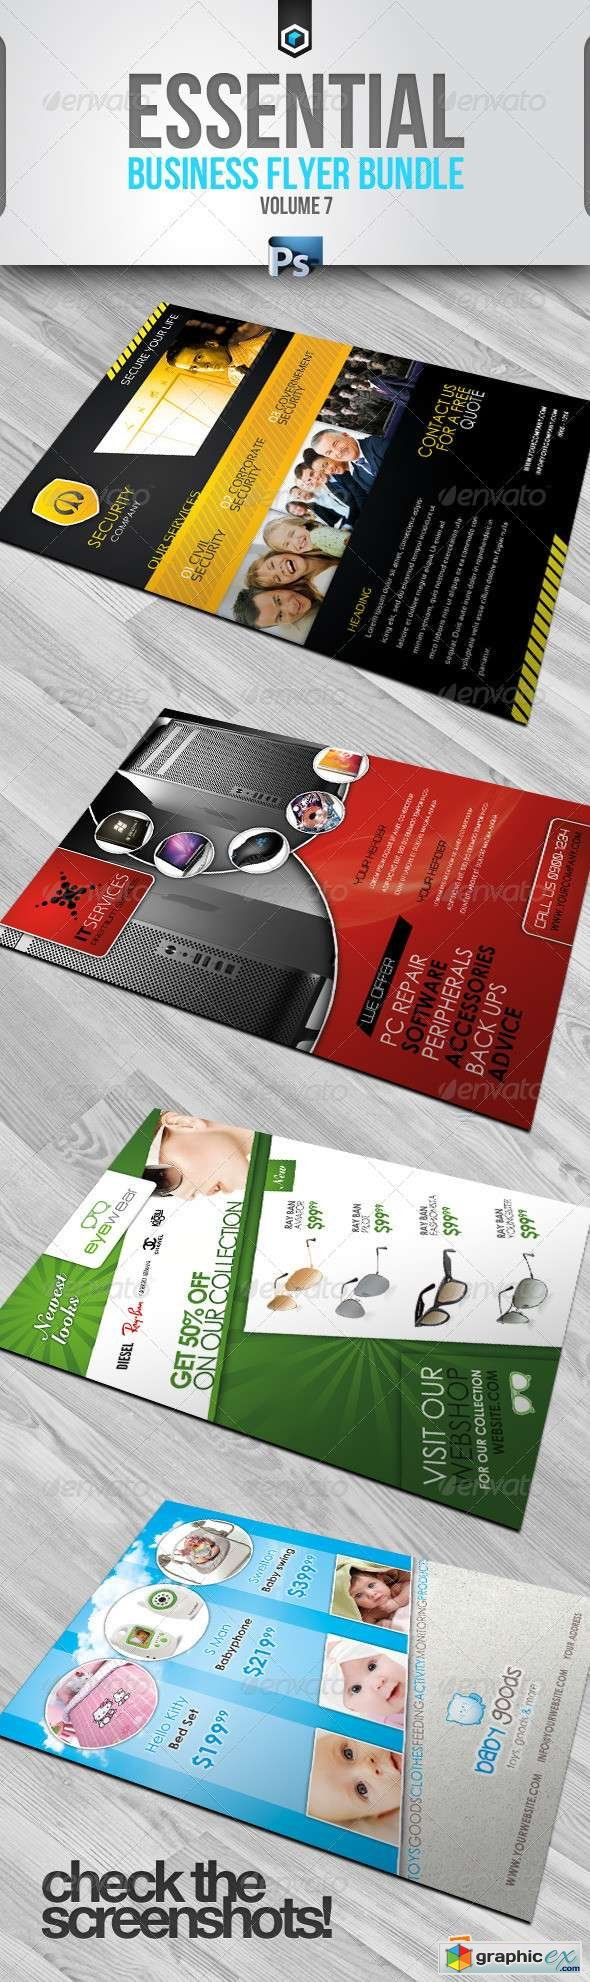 RW Essential Business Flyers Bundle Vol 7